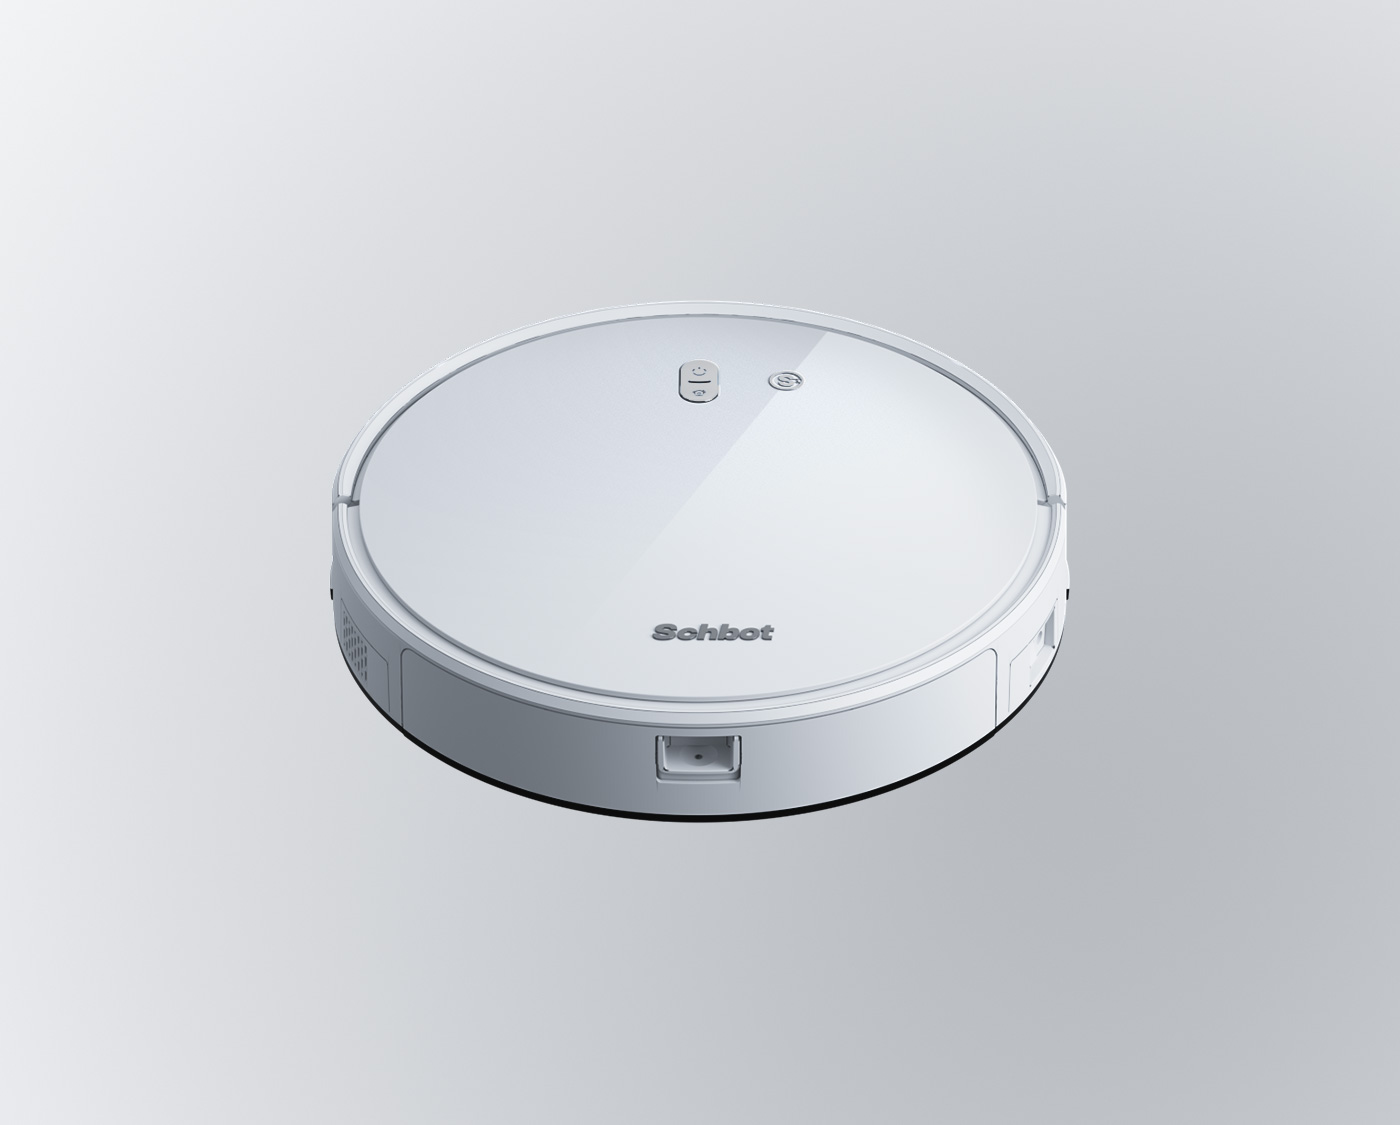 product rendering and 3d visualization schbot vacuum cleaner 9